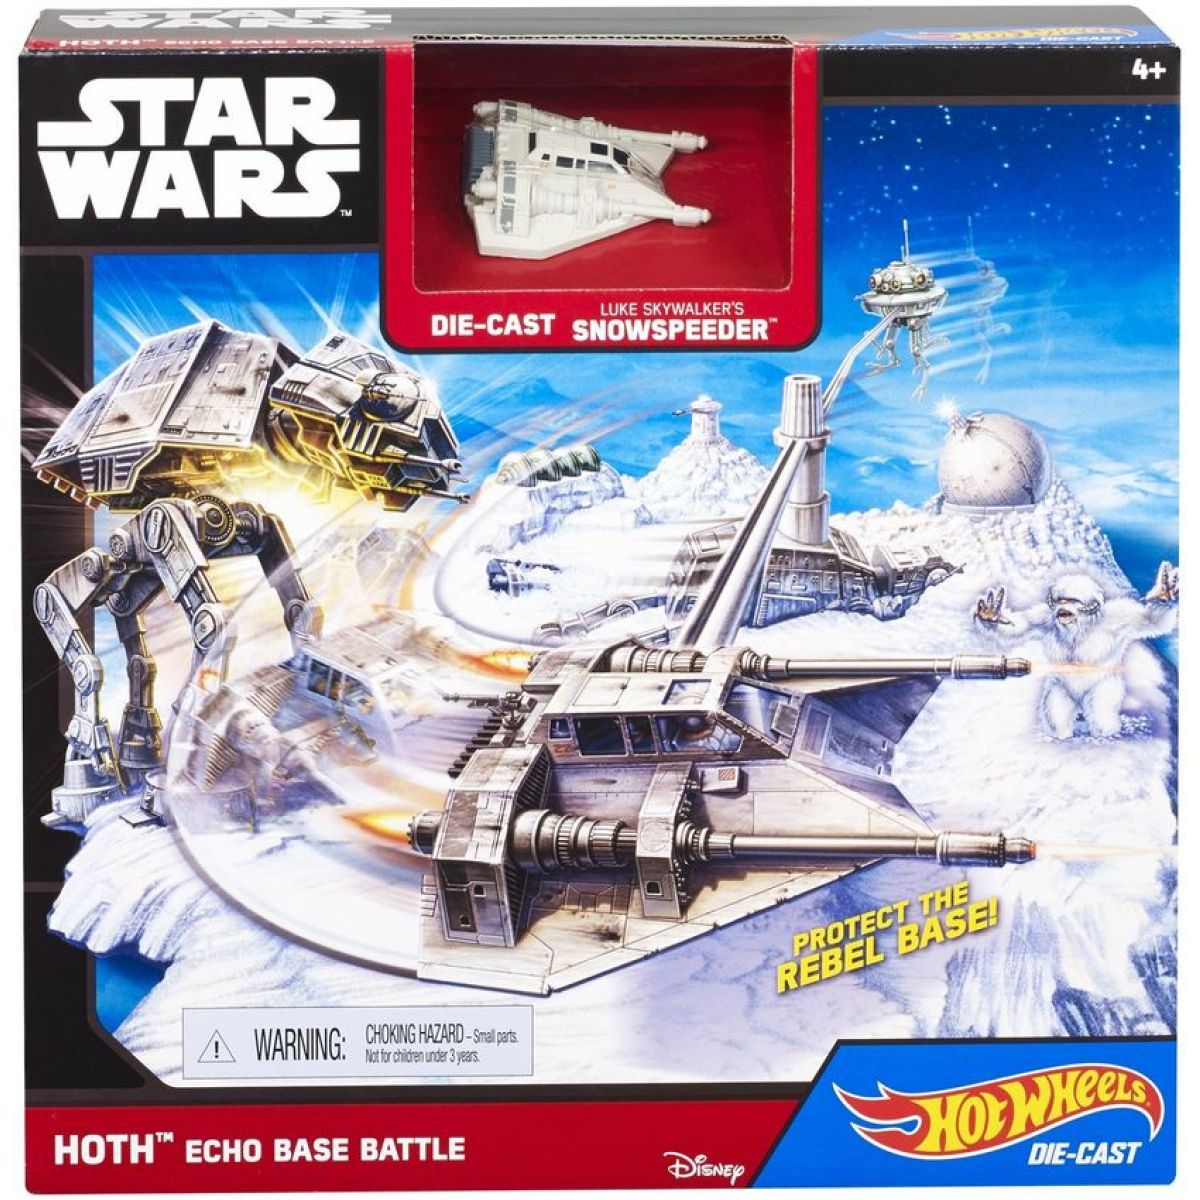 Hot Wheels Star Wars Hrací set s hvězdnou lodí - Hoth Echo Base Battle